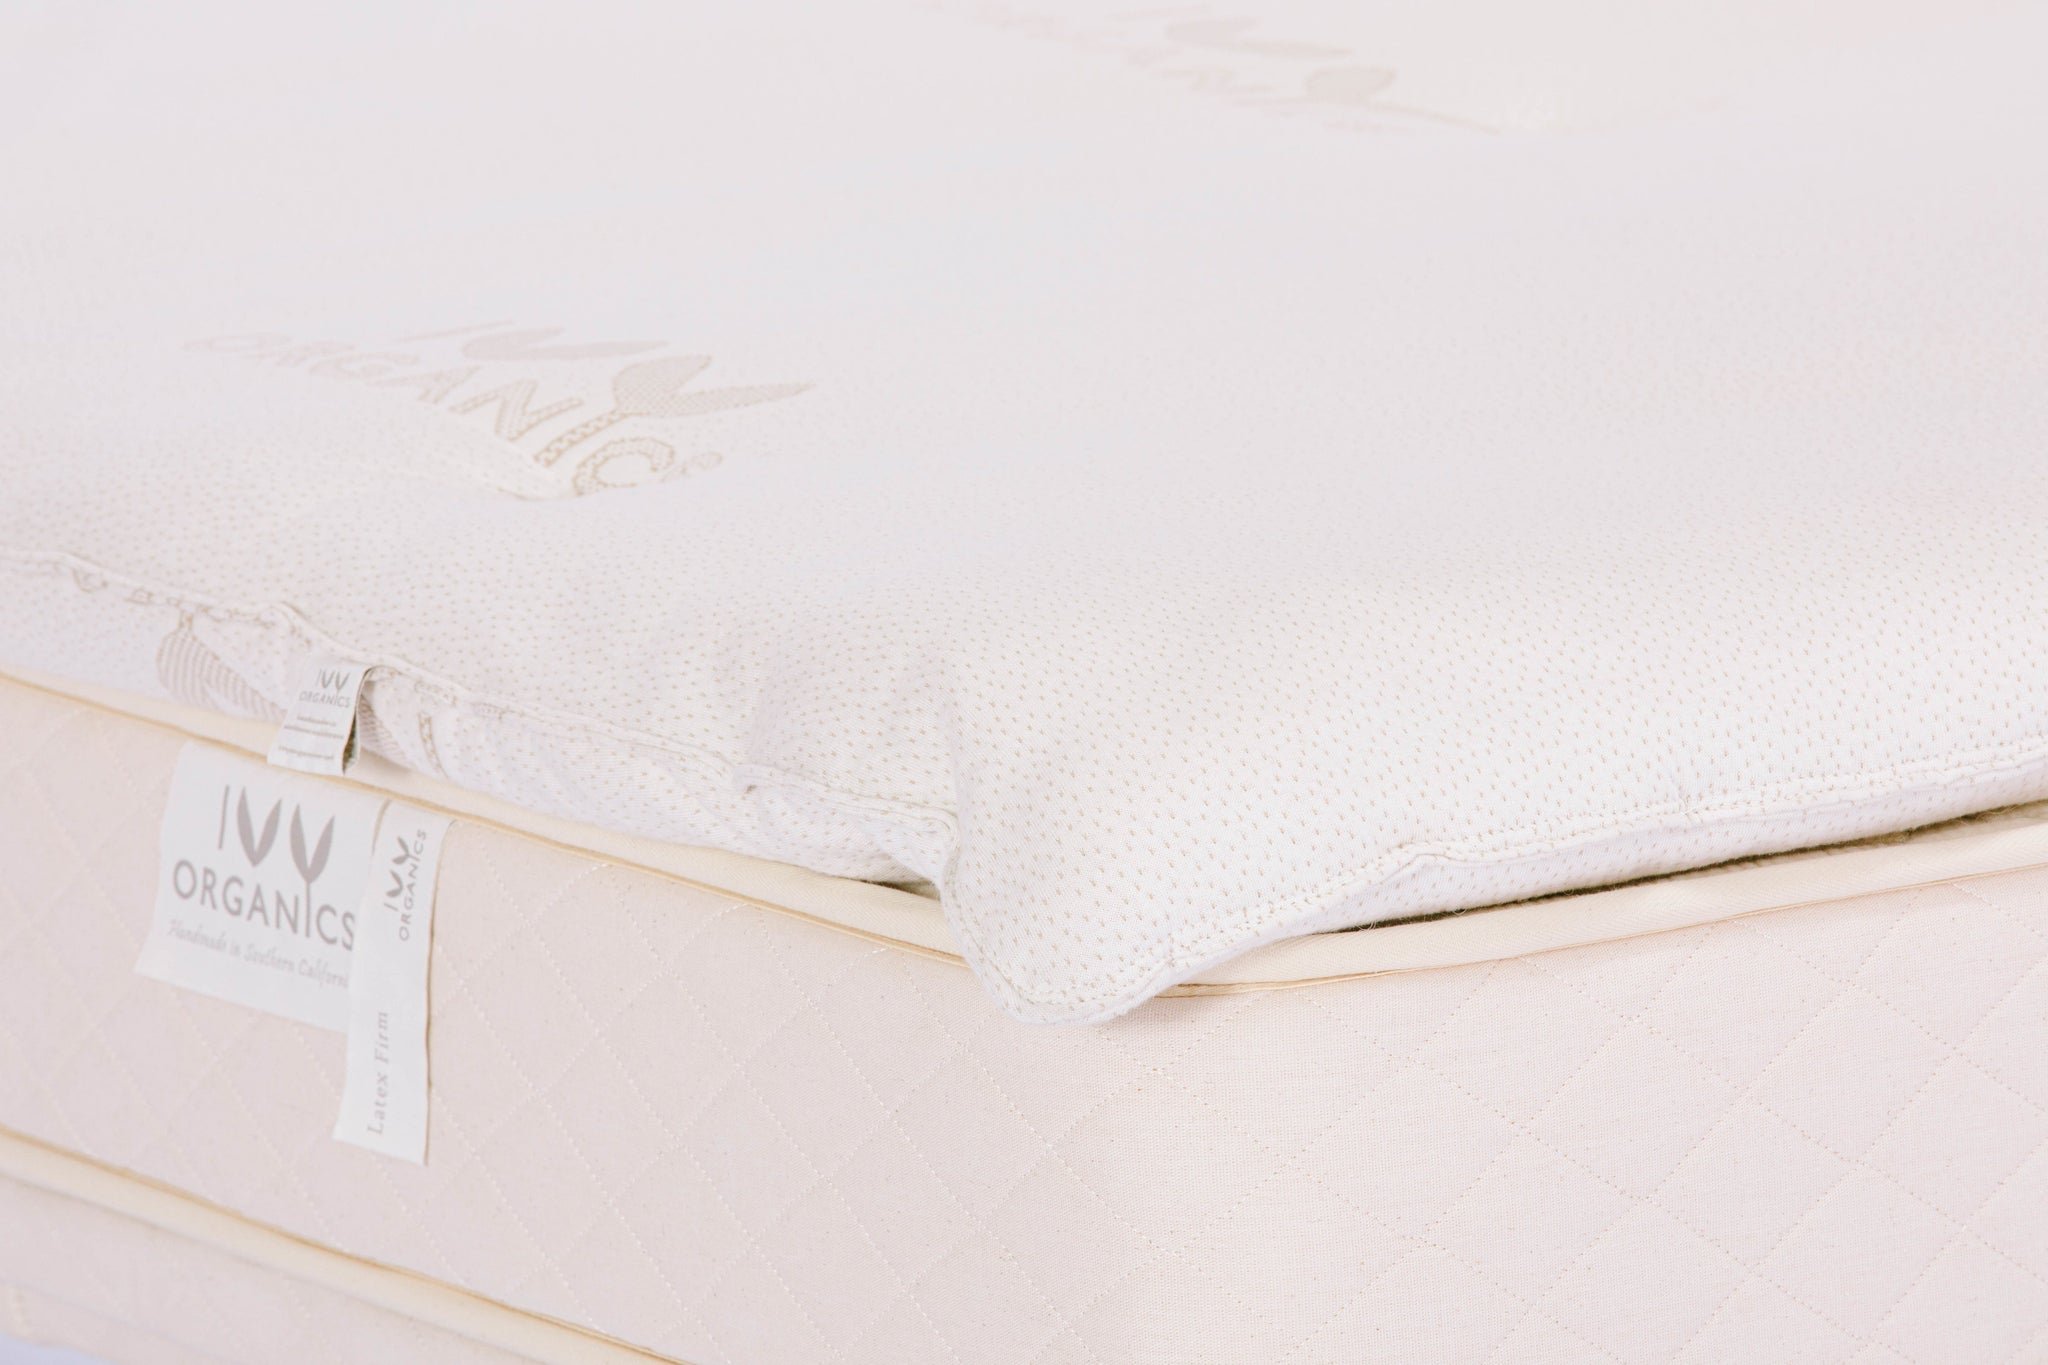 Wool Mattress Topper - 4 Inch - Ivy Organics